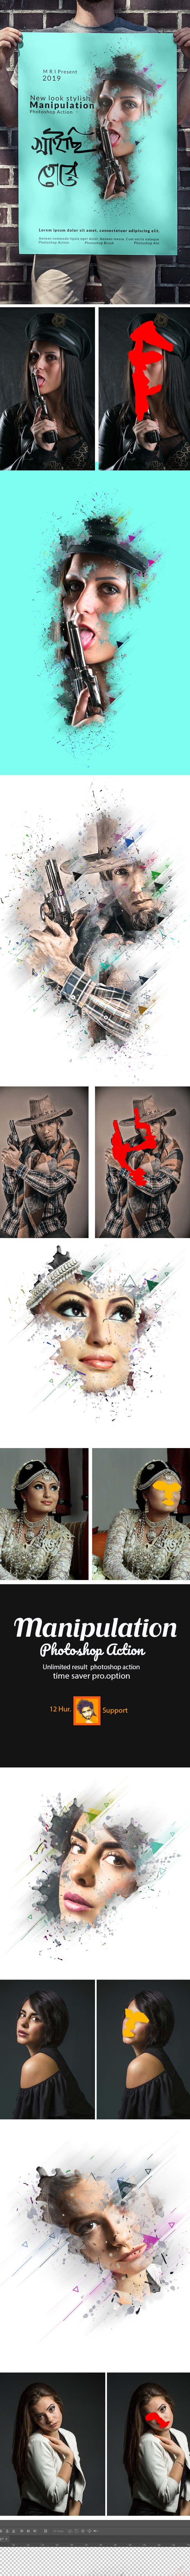 Manipulation Photoshop Action - Photo Effects Actions